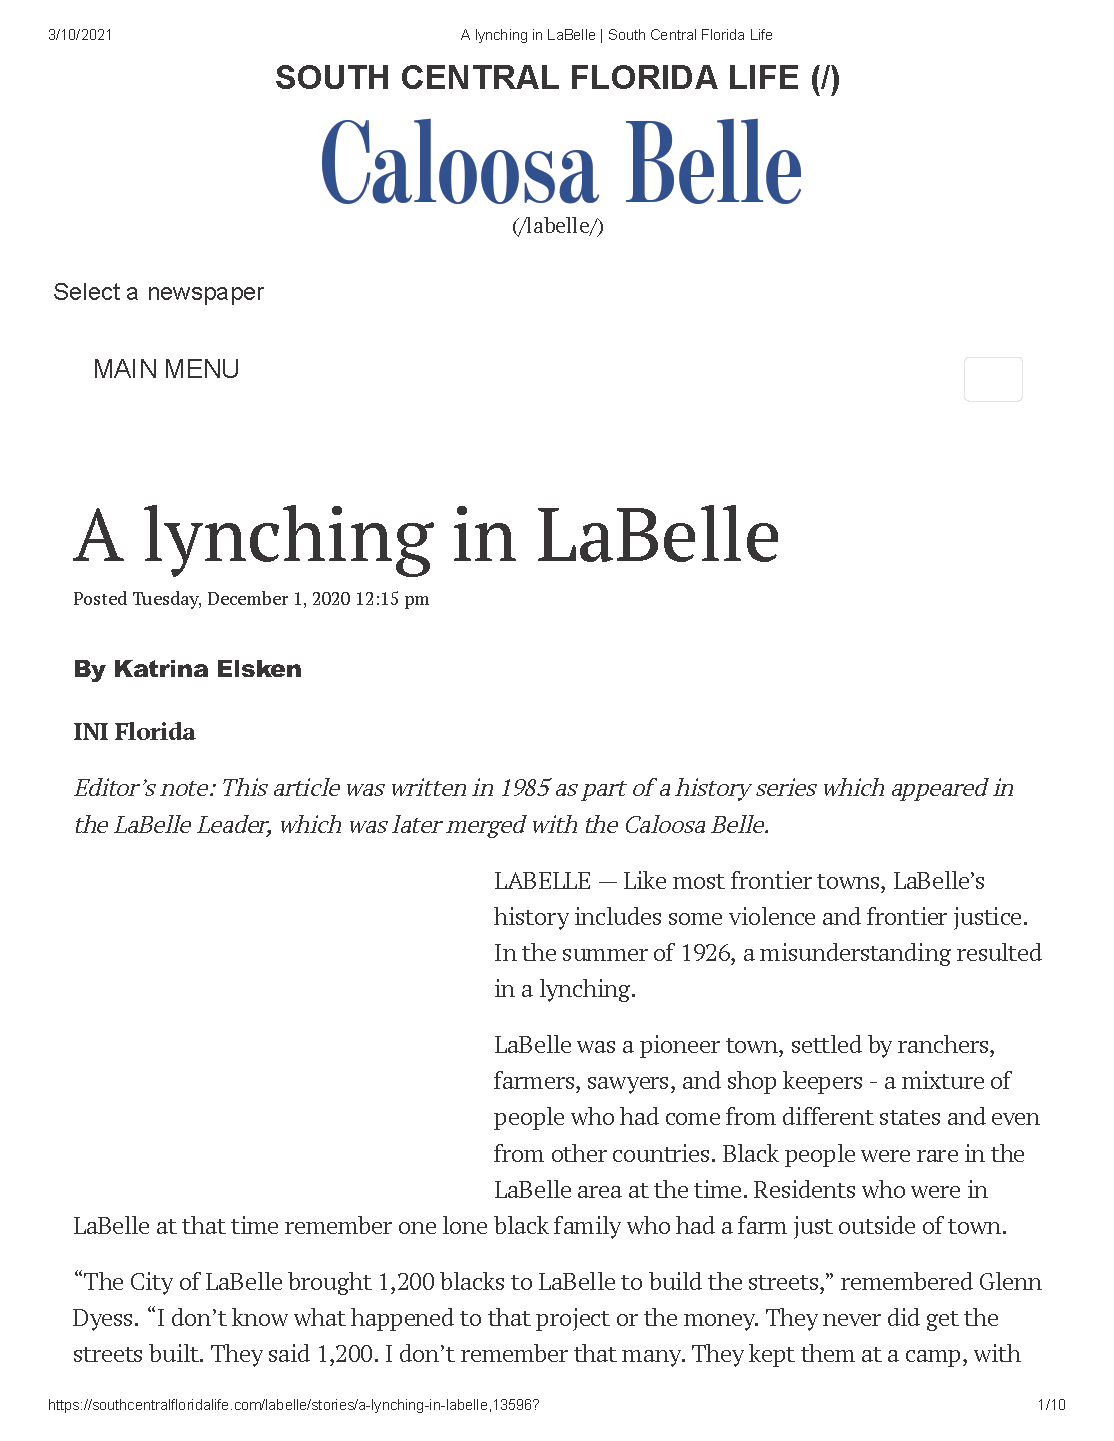 A lynching in LaBelle